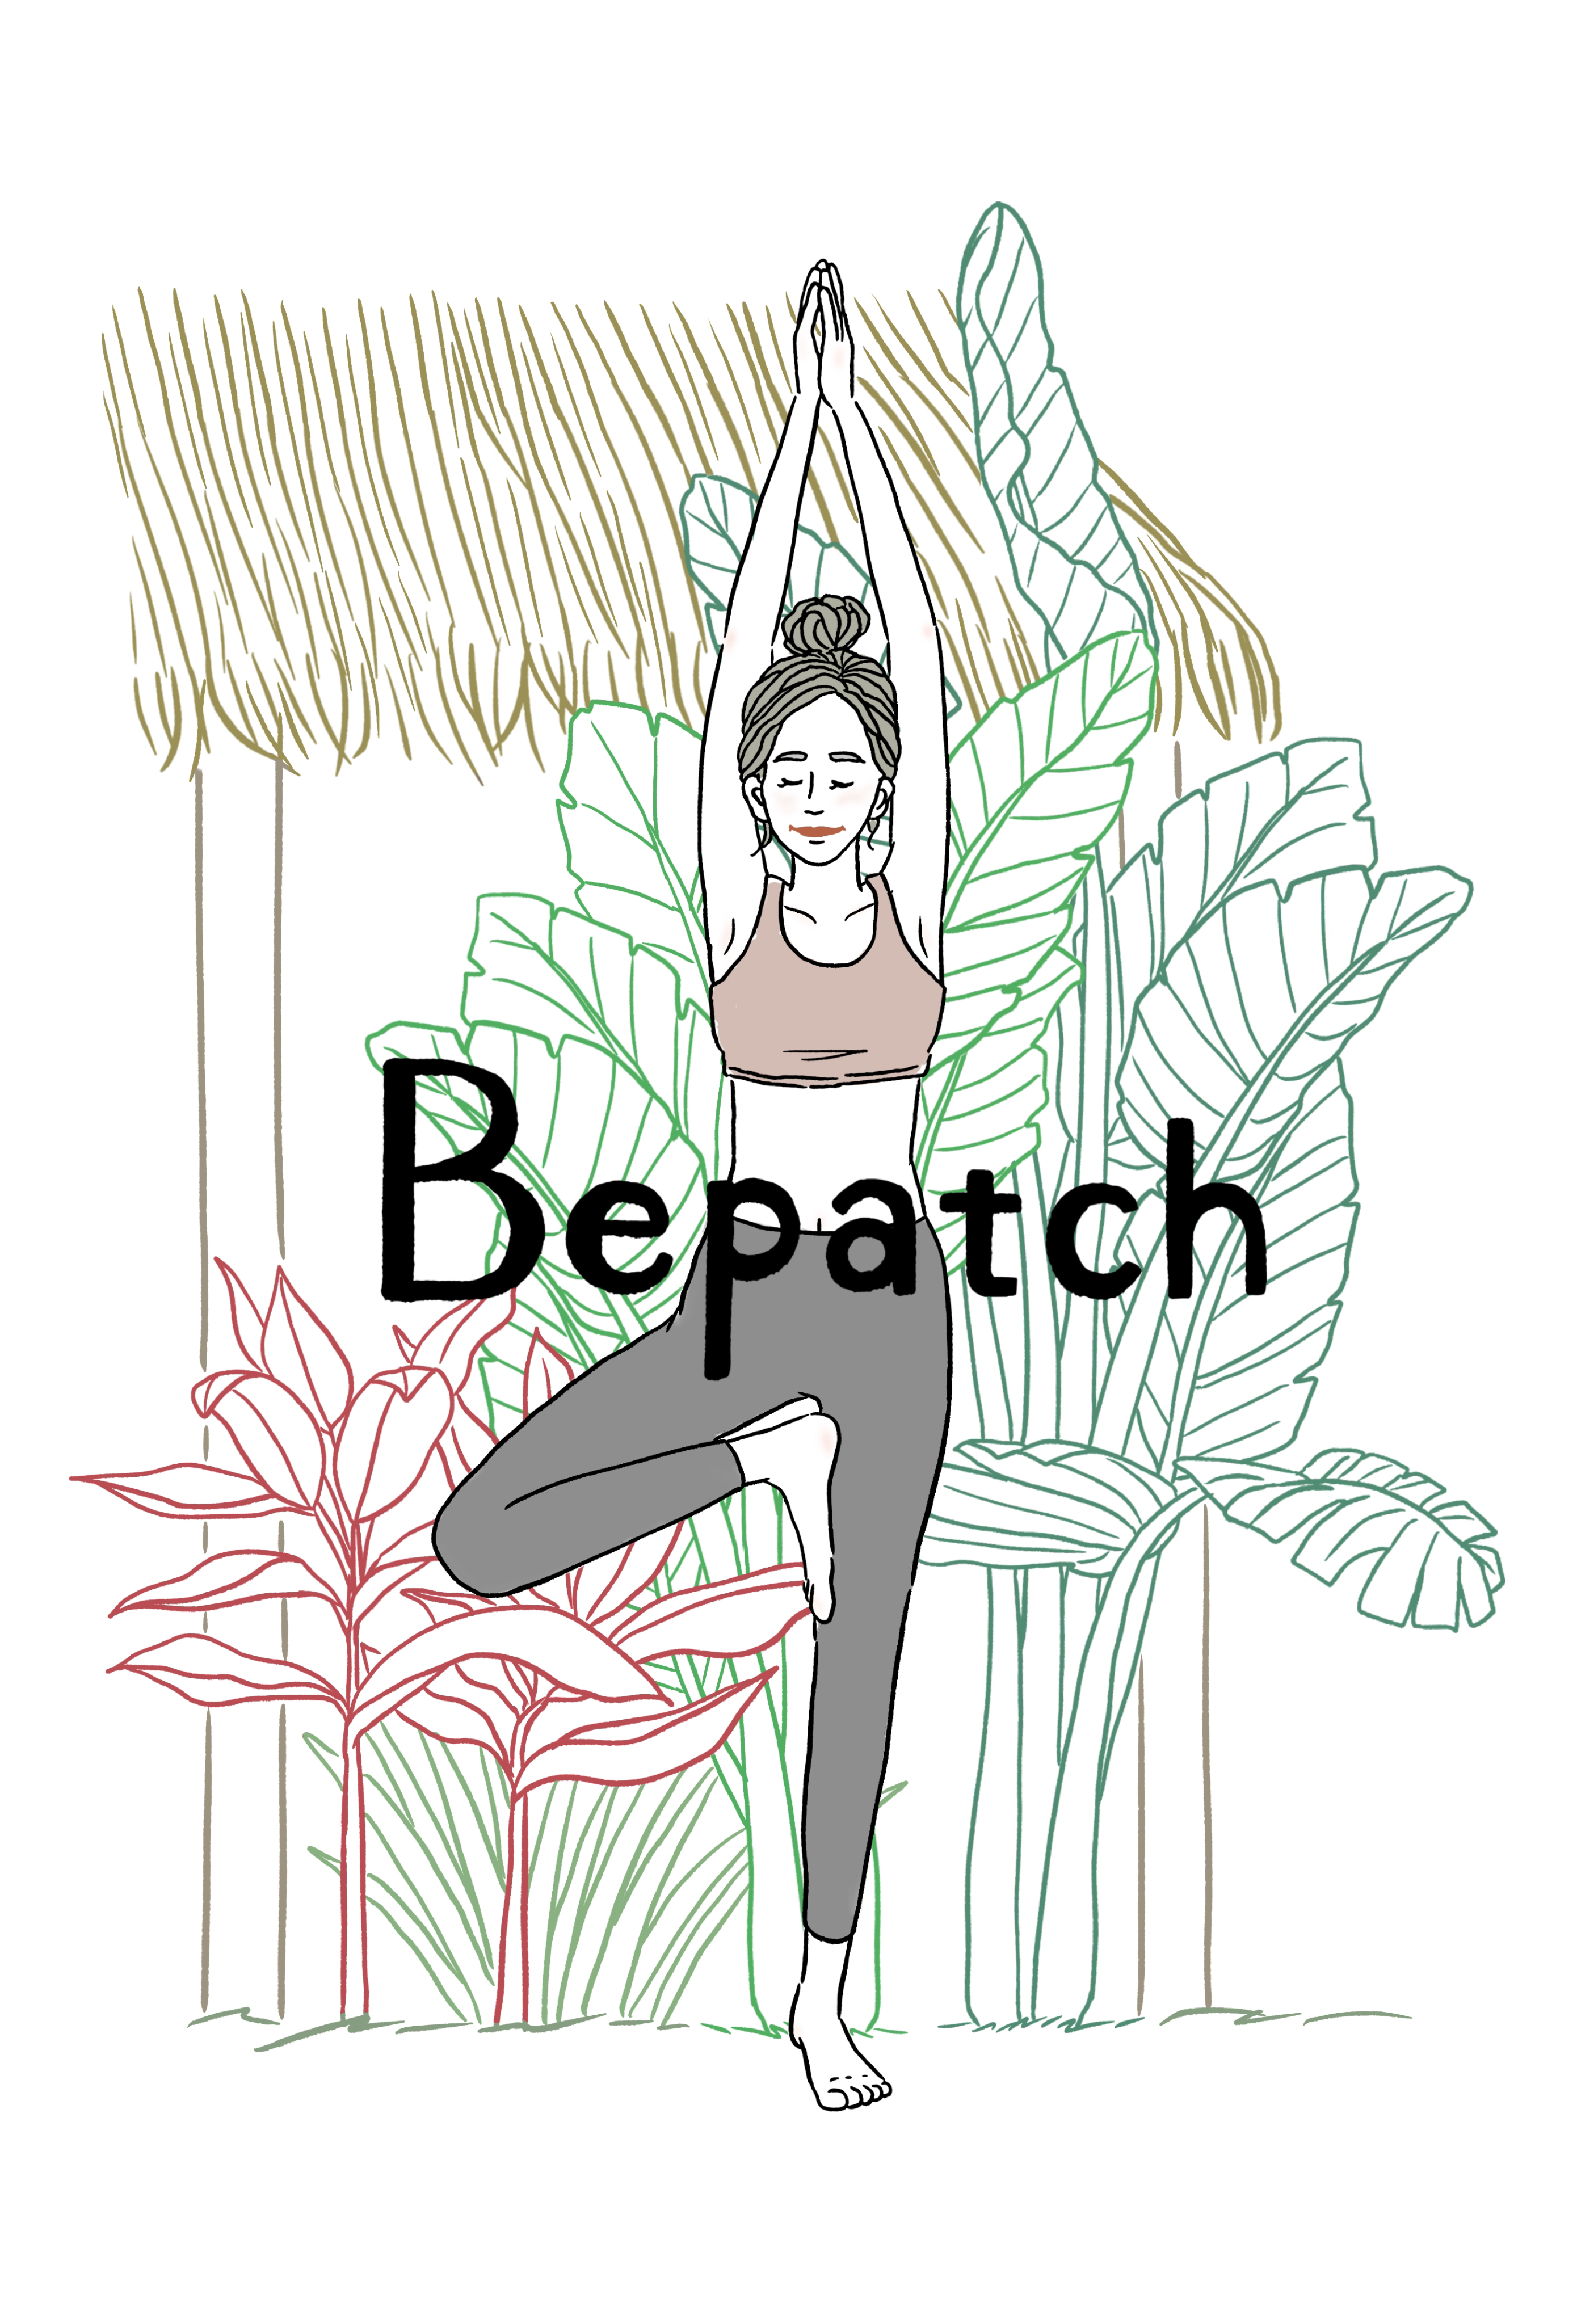 Bepatchの画像です